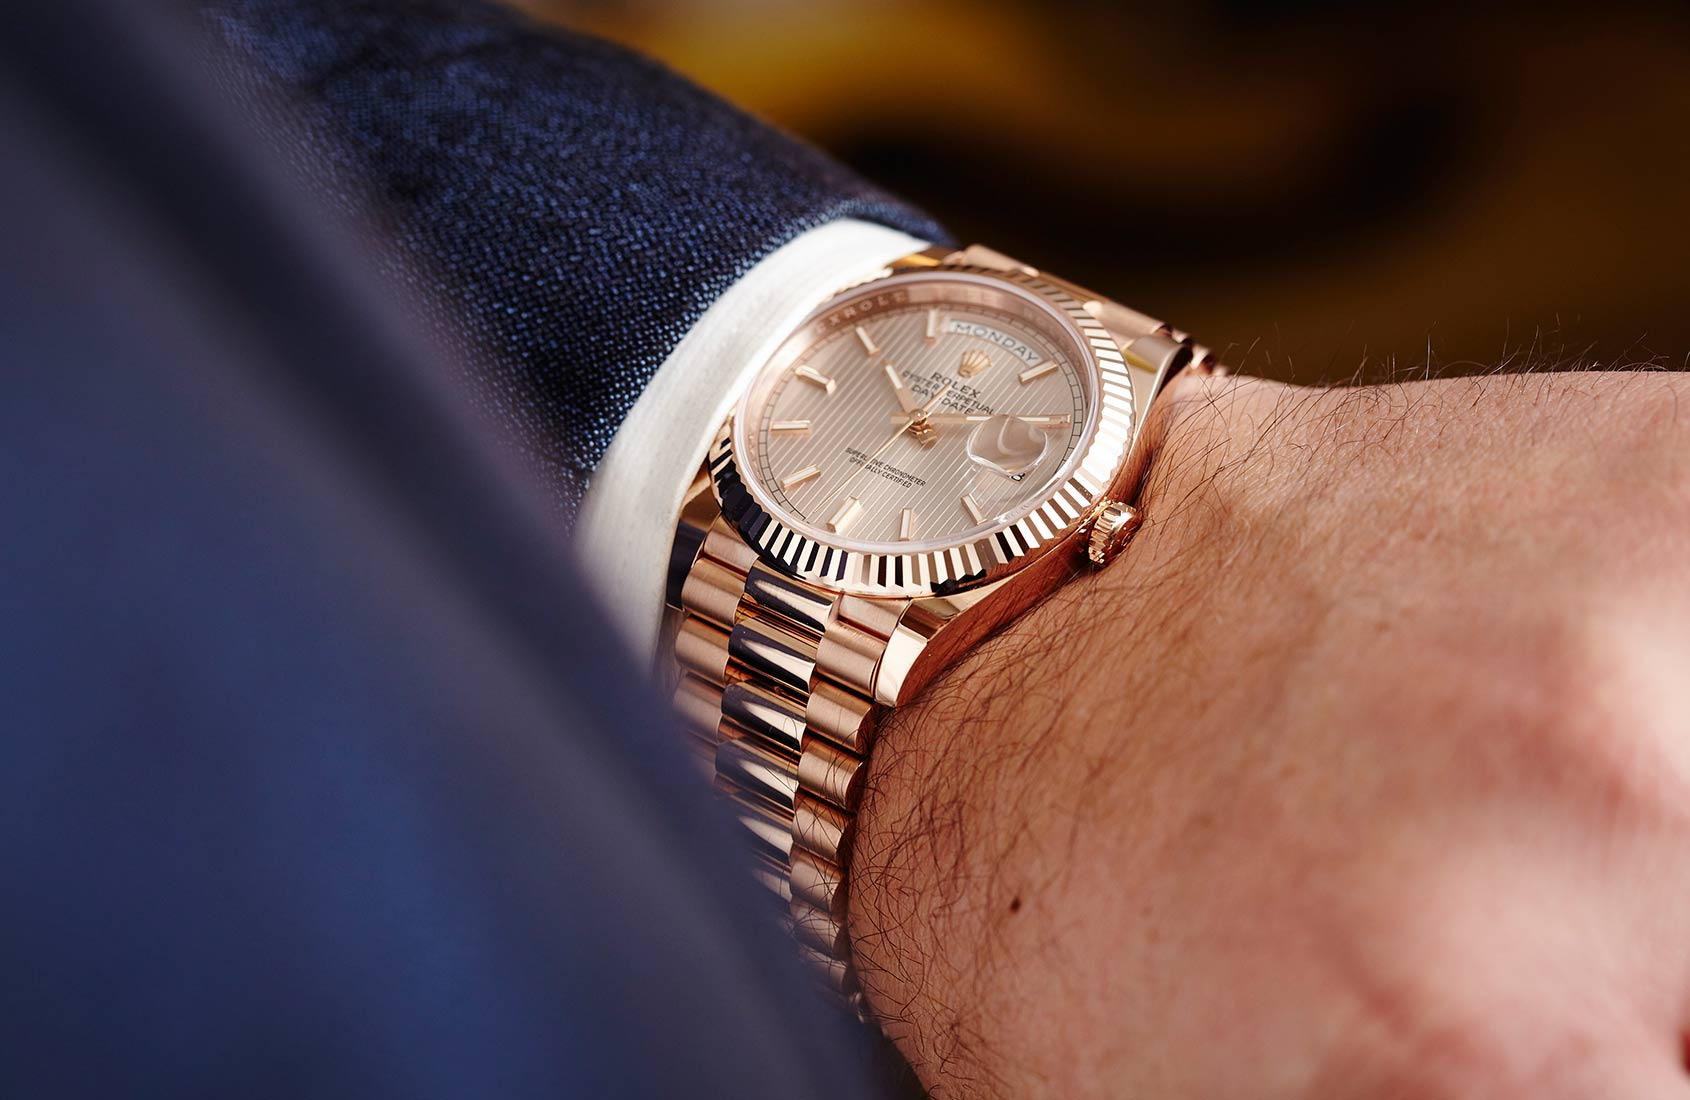 """Rolex Oyster Perpetual Day-Date 40 Calibre 3255 Watch""的图片搜索结果"